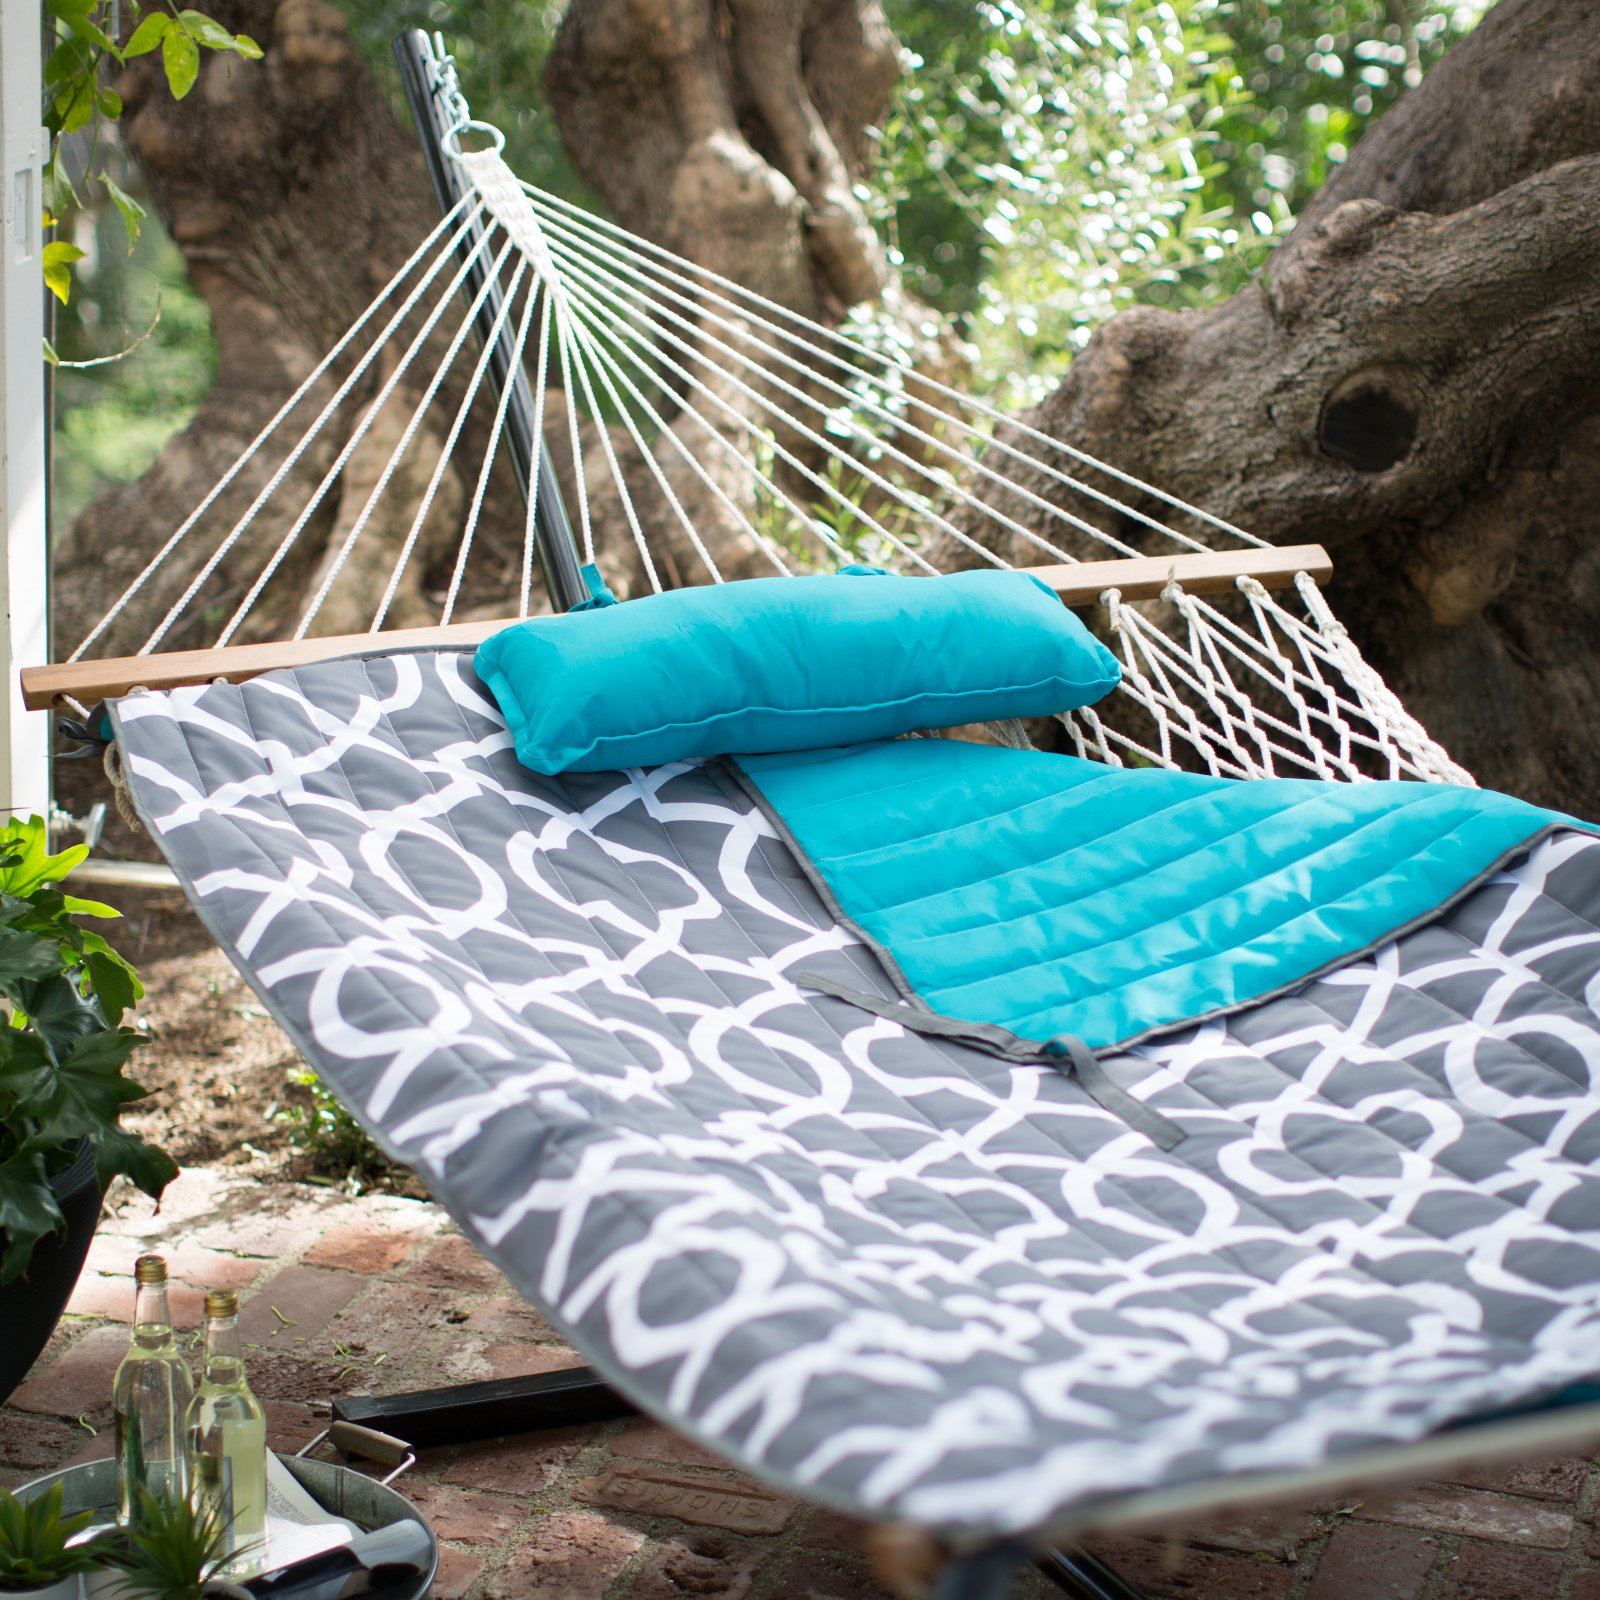 Algoma 11-ft. Cotton Rope Hammock with Metal Stand Deluxe Set by Algoma Net Co